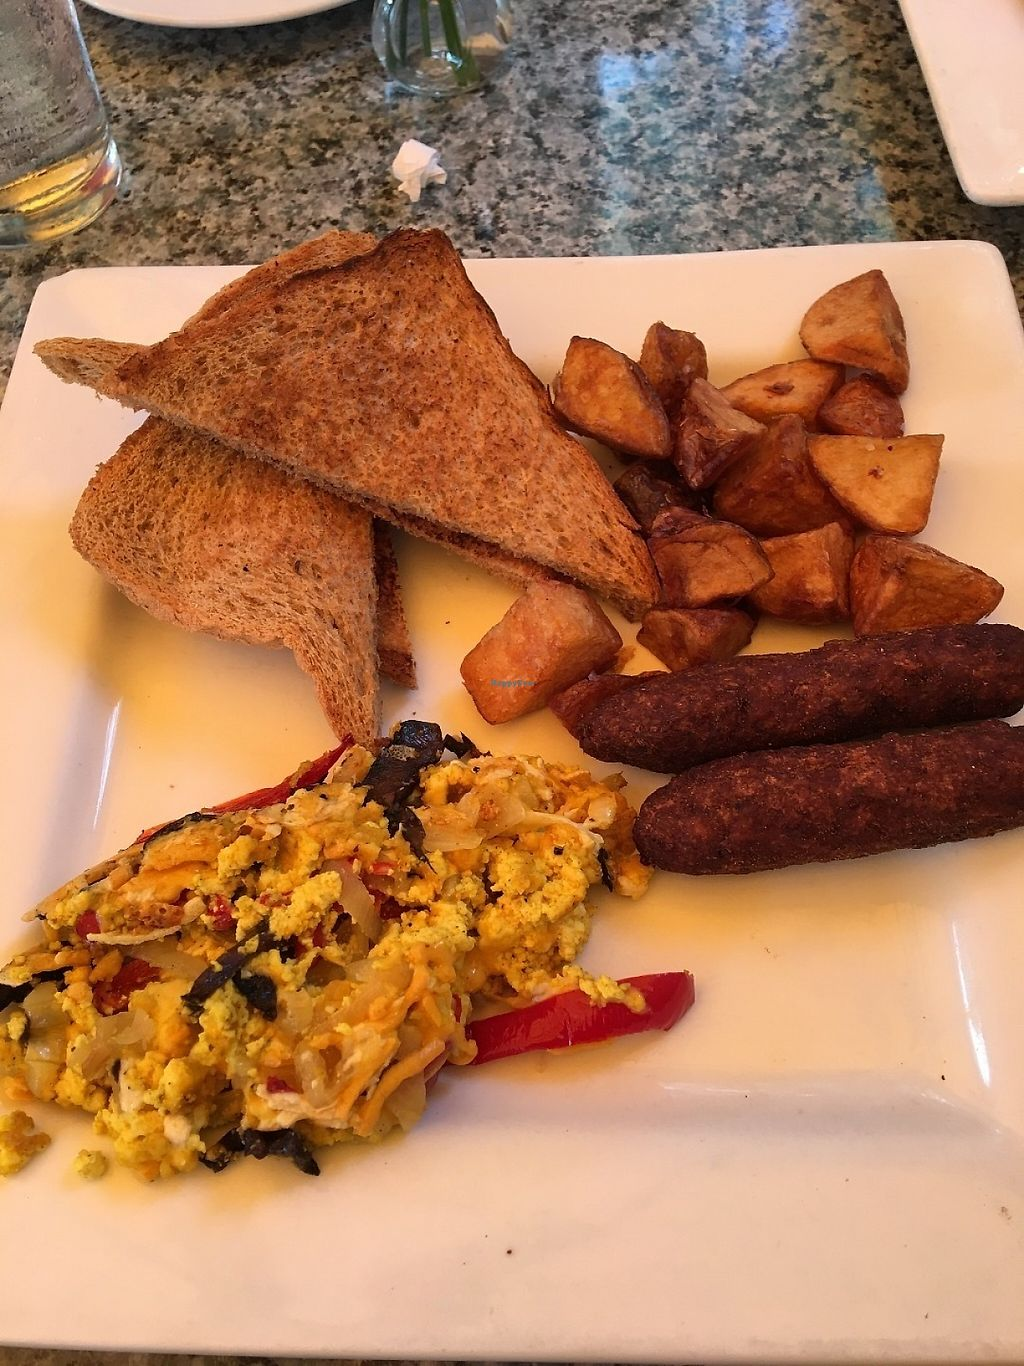 """Photo of Darbster - West Palm Beach  by <a href=""""/members/profile/Phoenix1111"""">Phoenix1111</a> <br/>Tofu scramble, toast and vegan sausage <br/> May 27, 2017  - <a href='/contact/abuse/image/19007/262906'>Report</a>"""